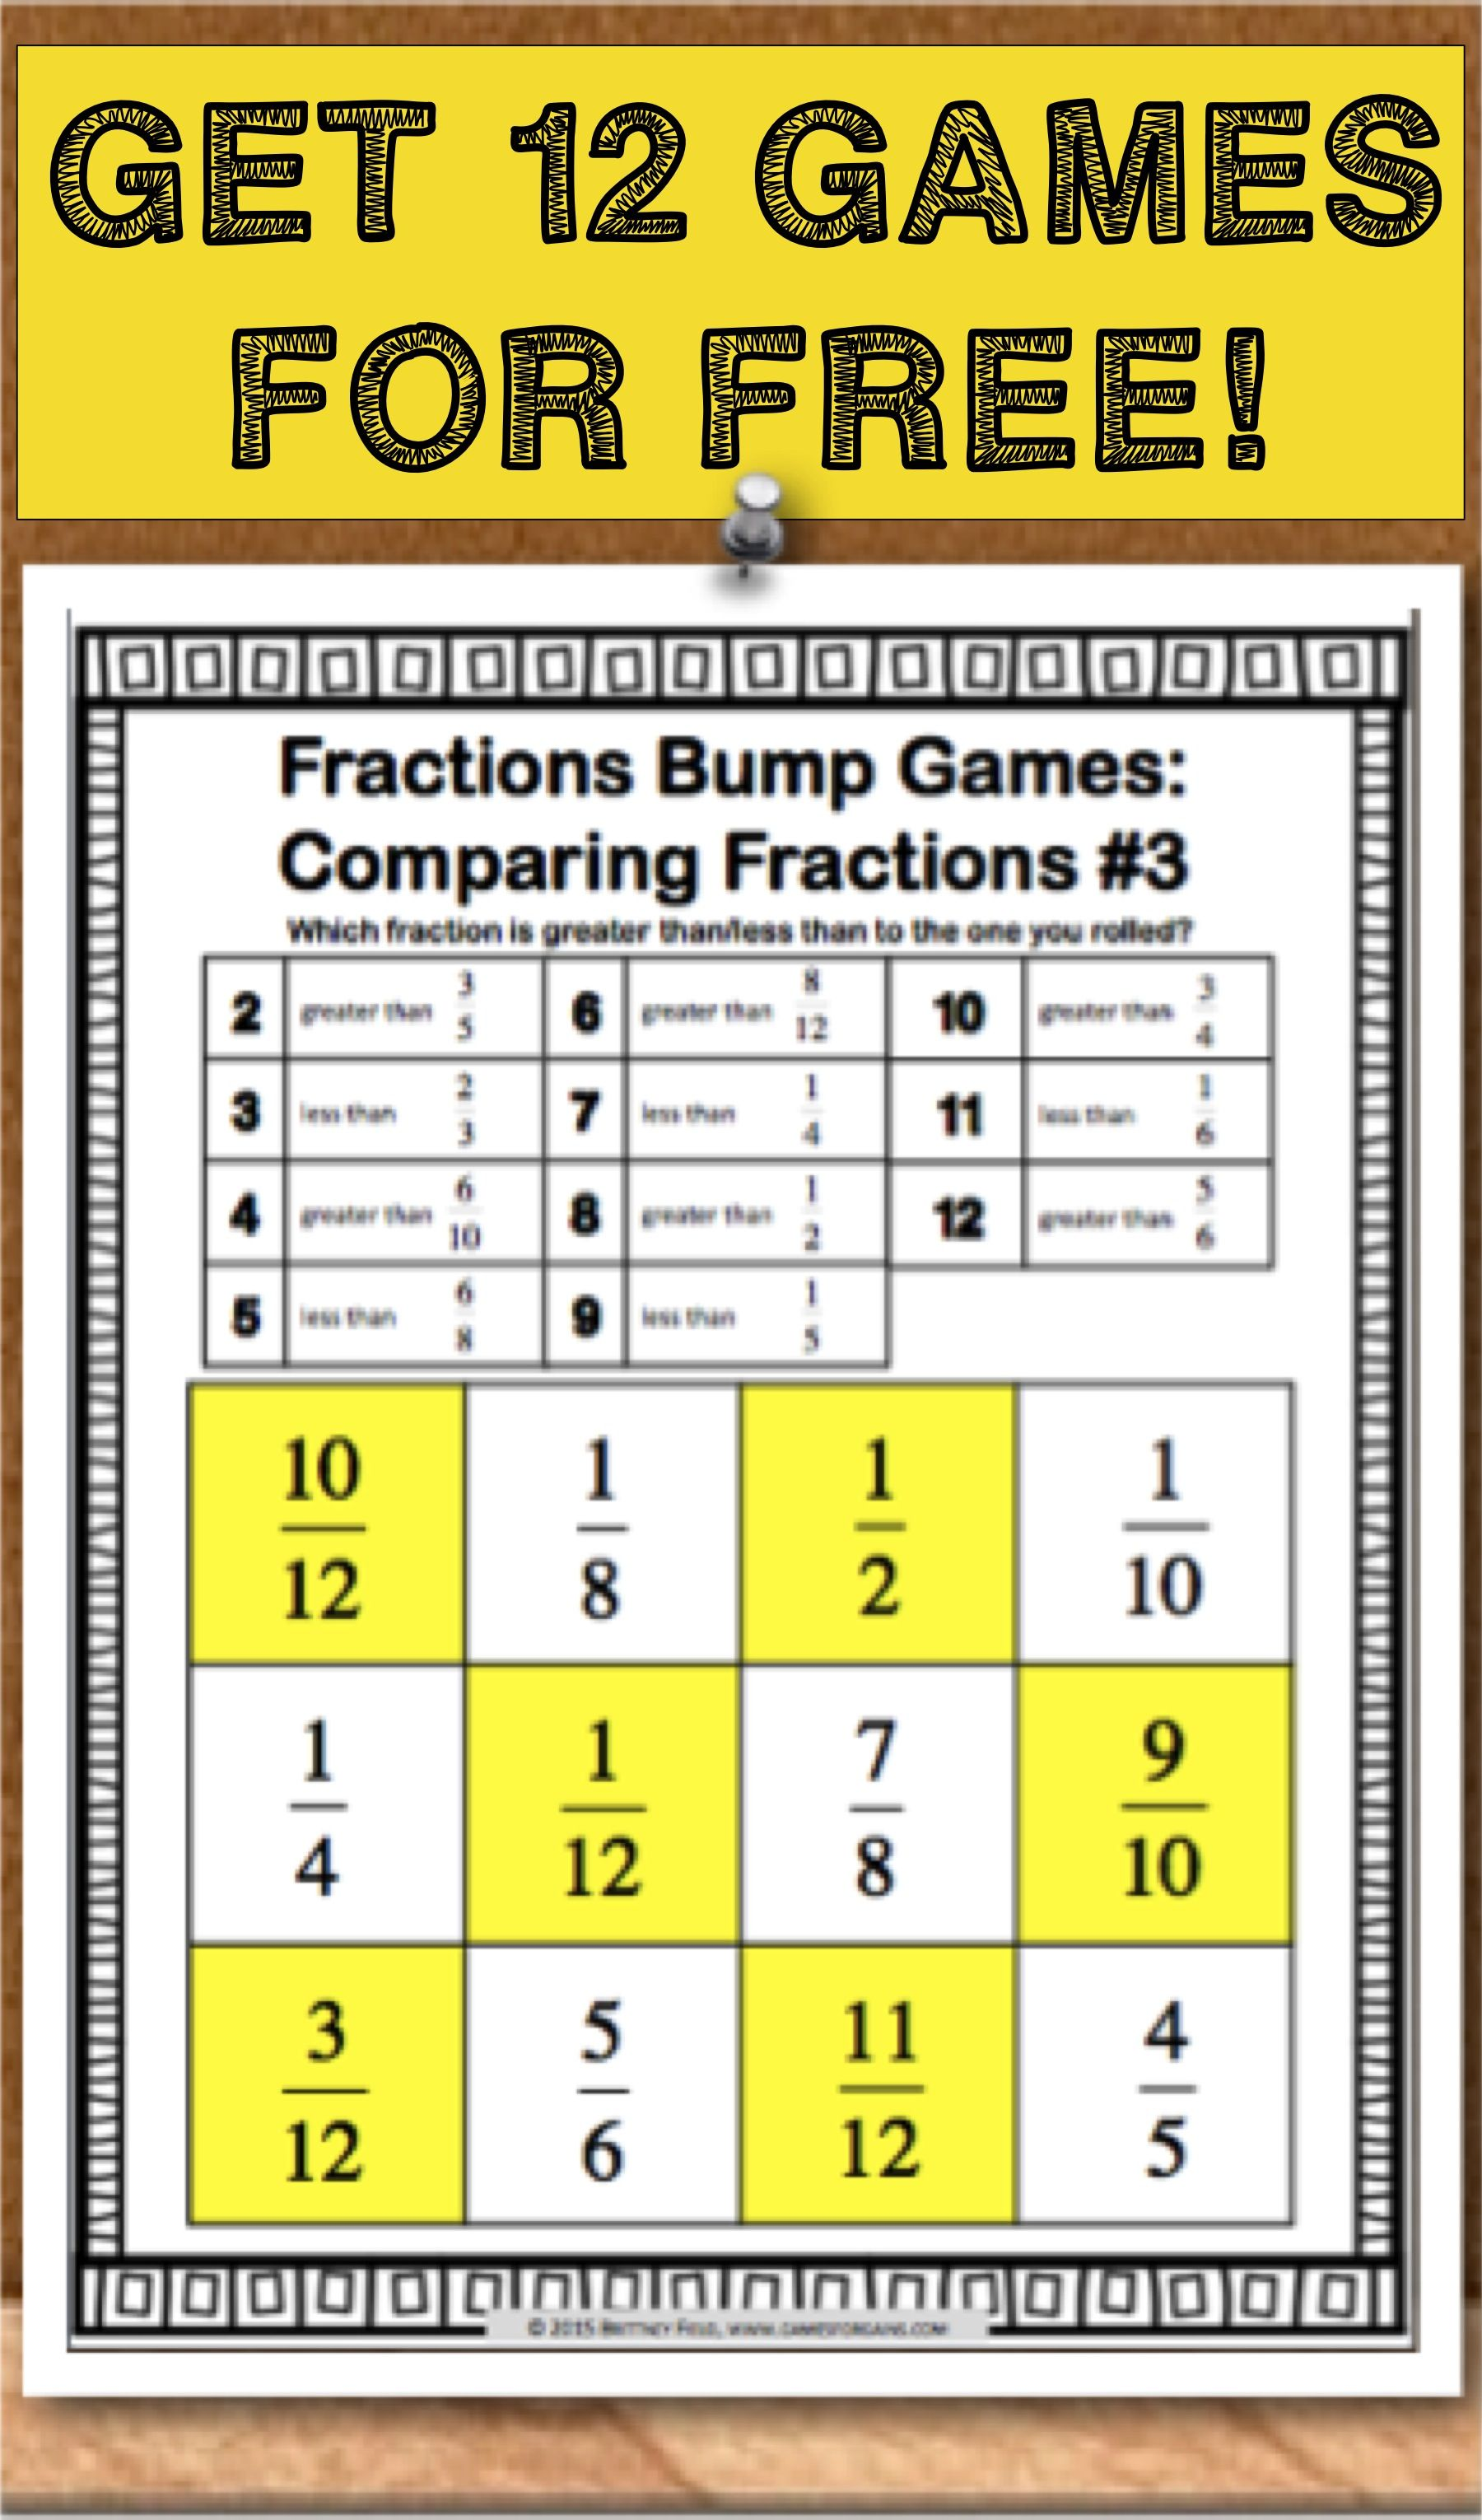 Get This And 11 Other Fraction Bumps Games As An Exclusive